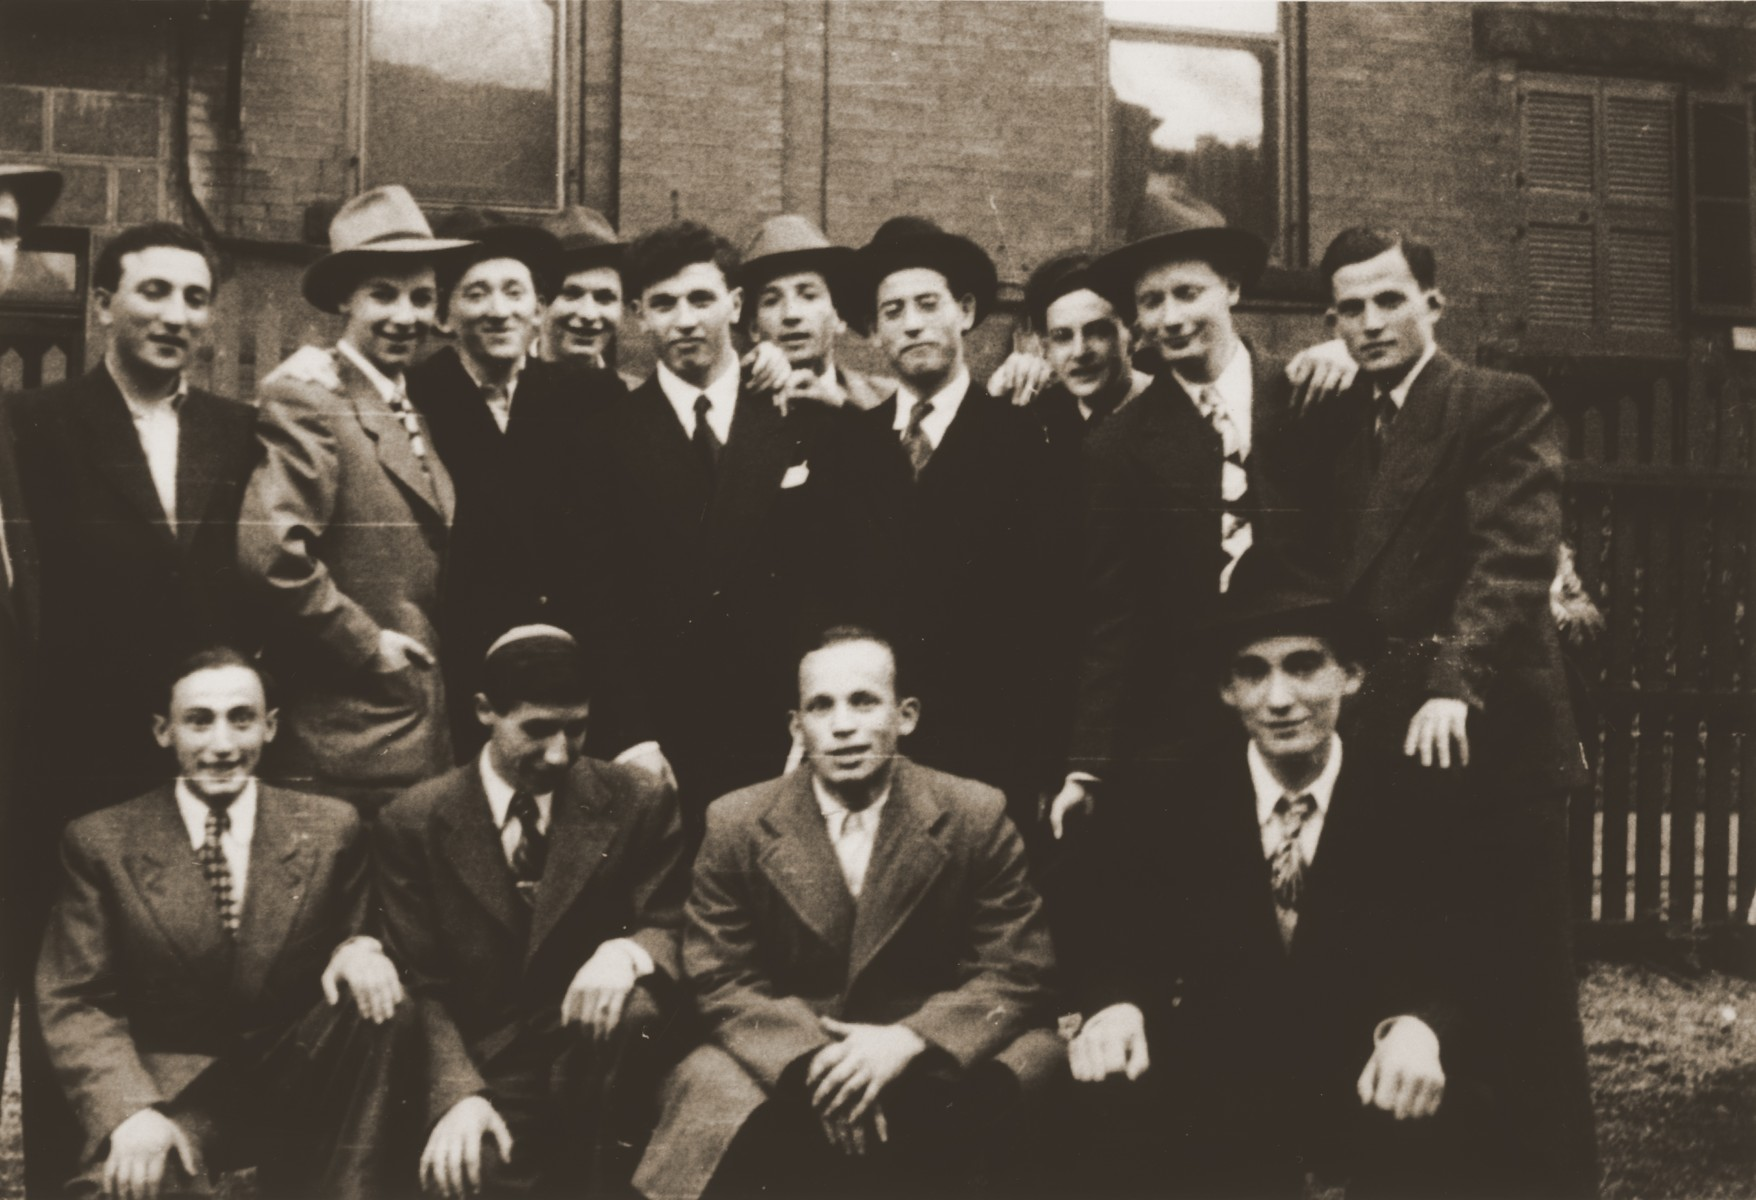 Group portrait of young Jewish men at the Kloster Indersdorf DP children's center.